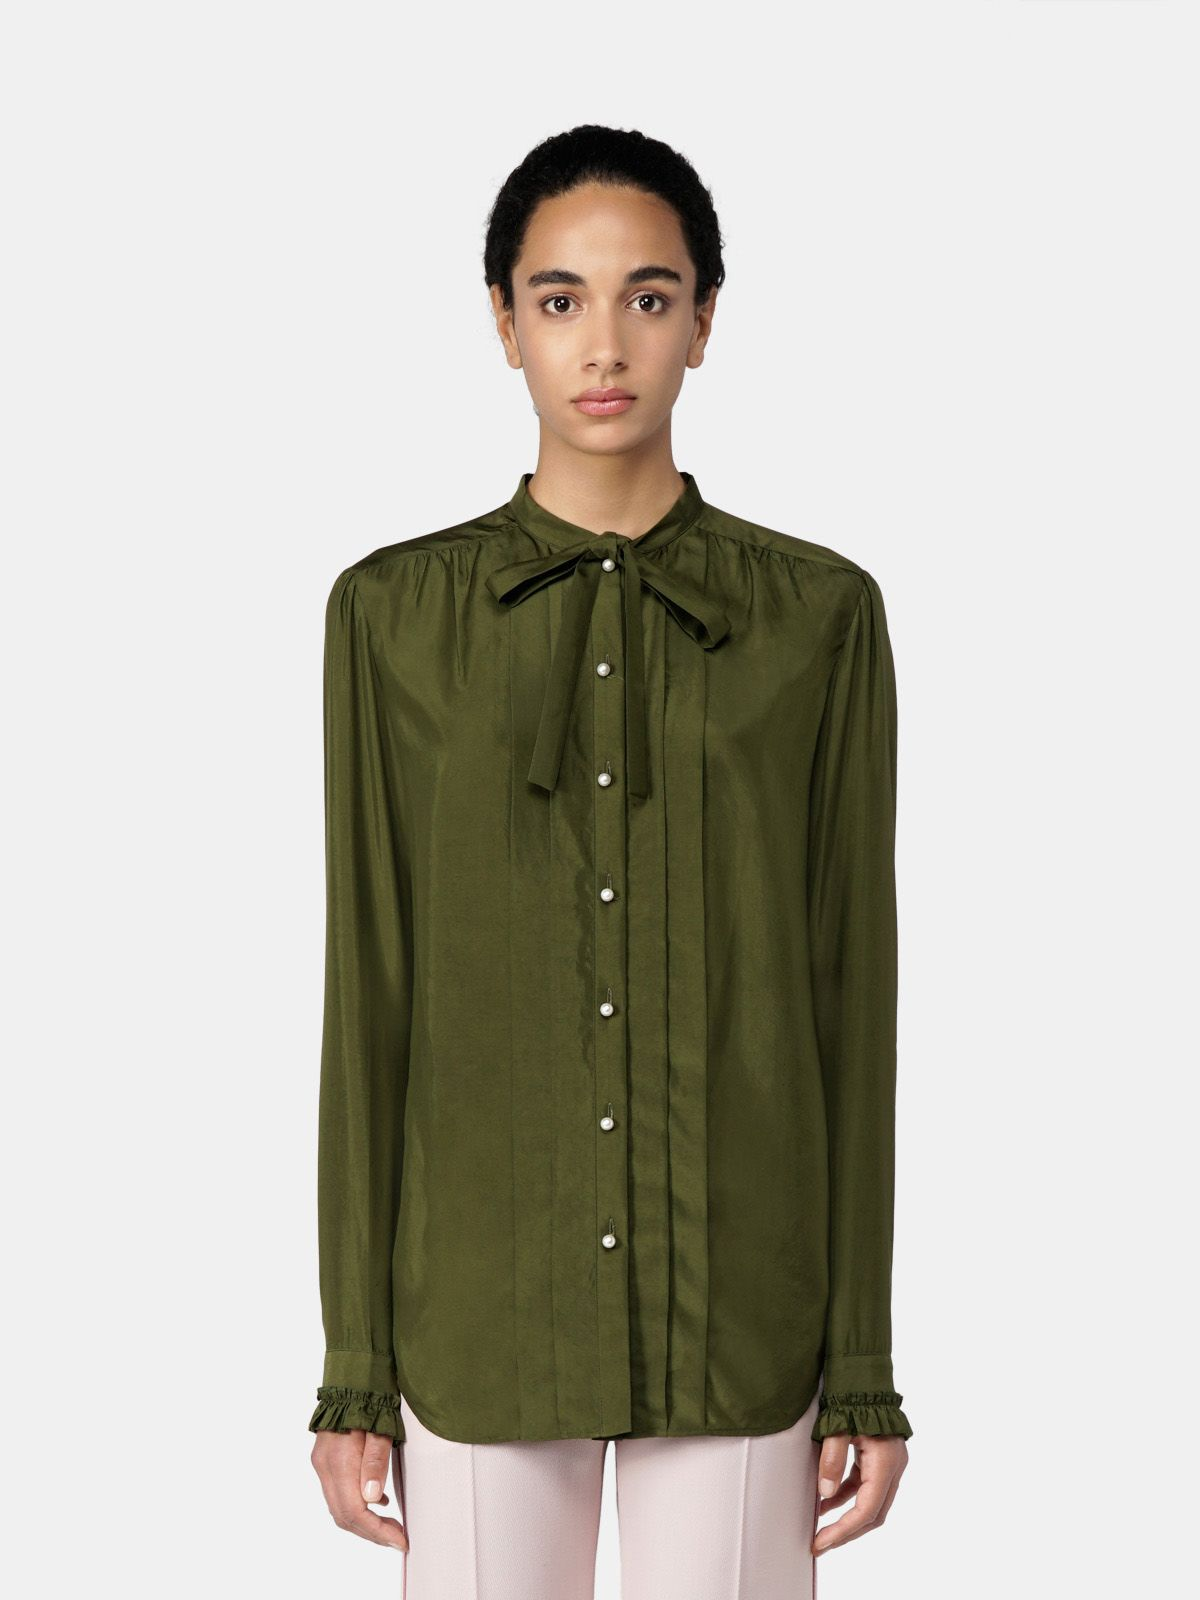 Golden Goose - Alessia shirt in military green cupro in